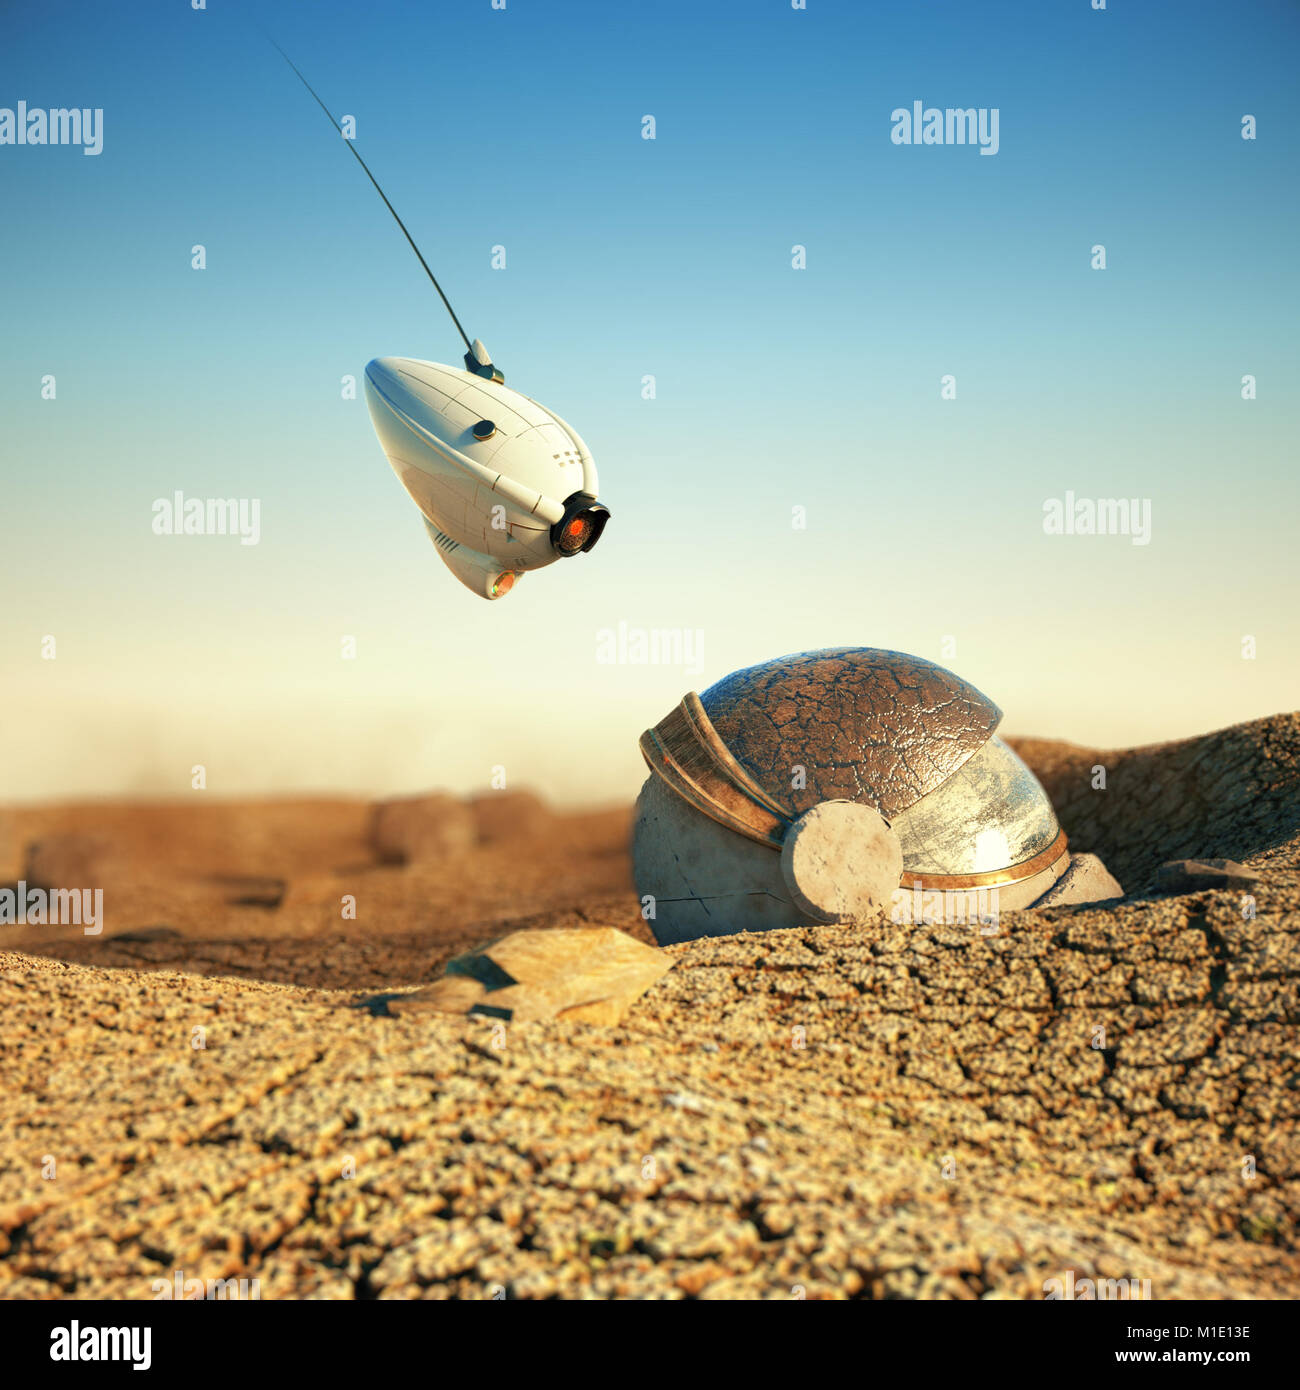 white robot drone hovering over obsolete space helmet in cracked desert on other planet. sci-fi concept 3d render - Stock Image